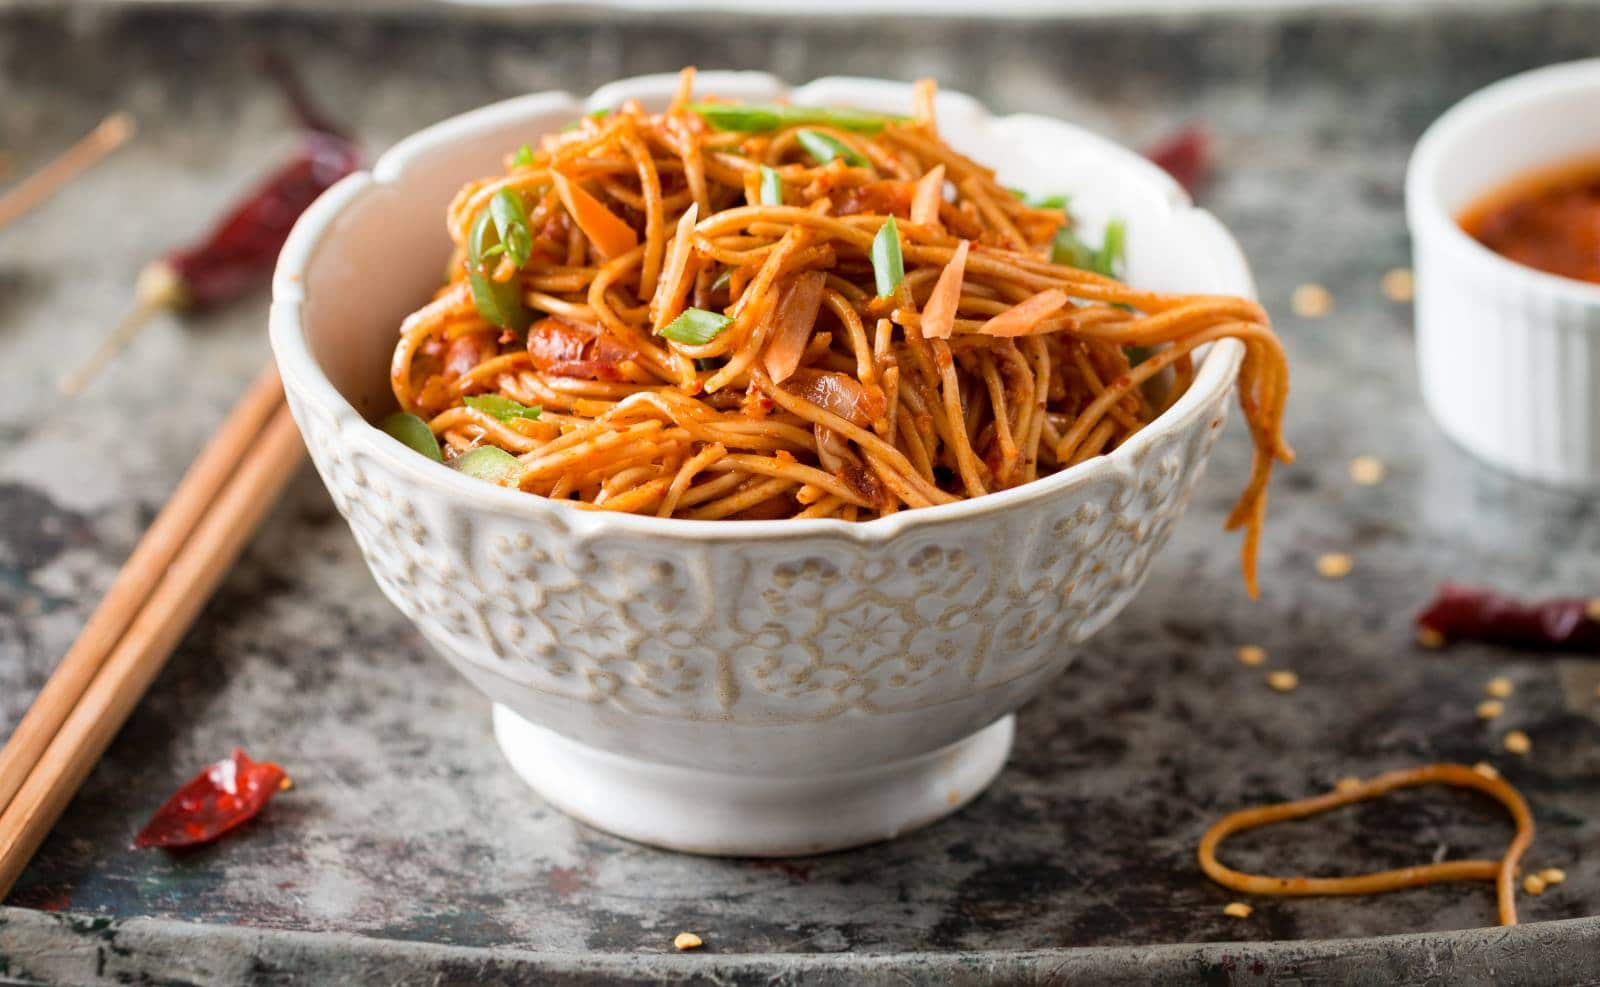 Spicy_Vermicilli_Noodles-Lunchbox-For-Kids